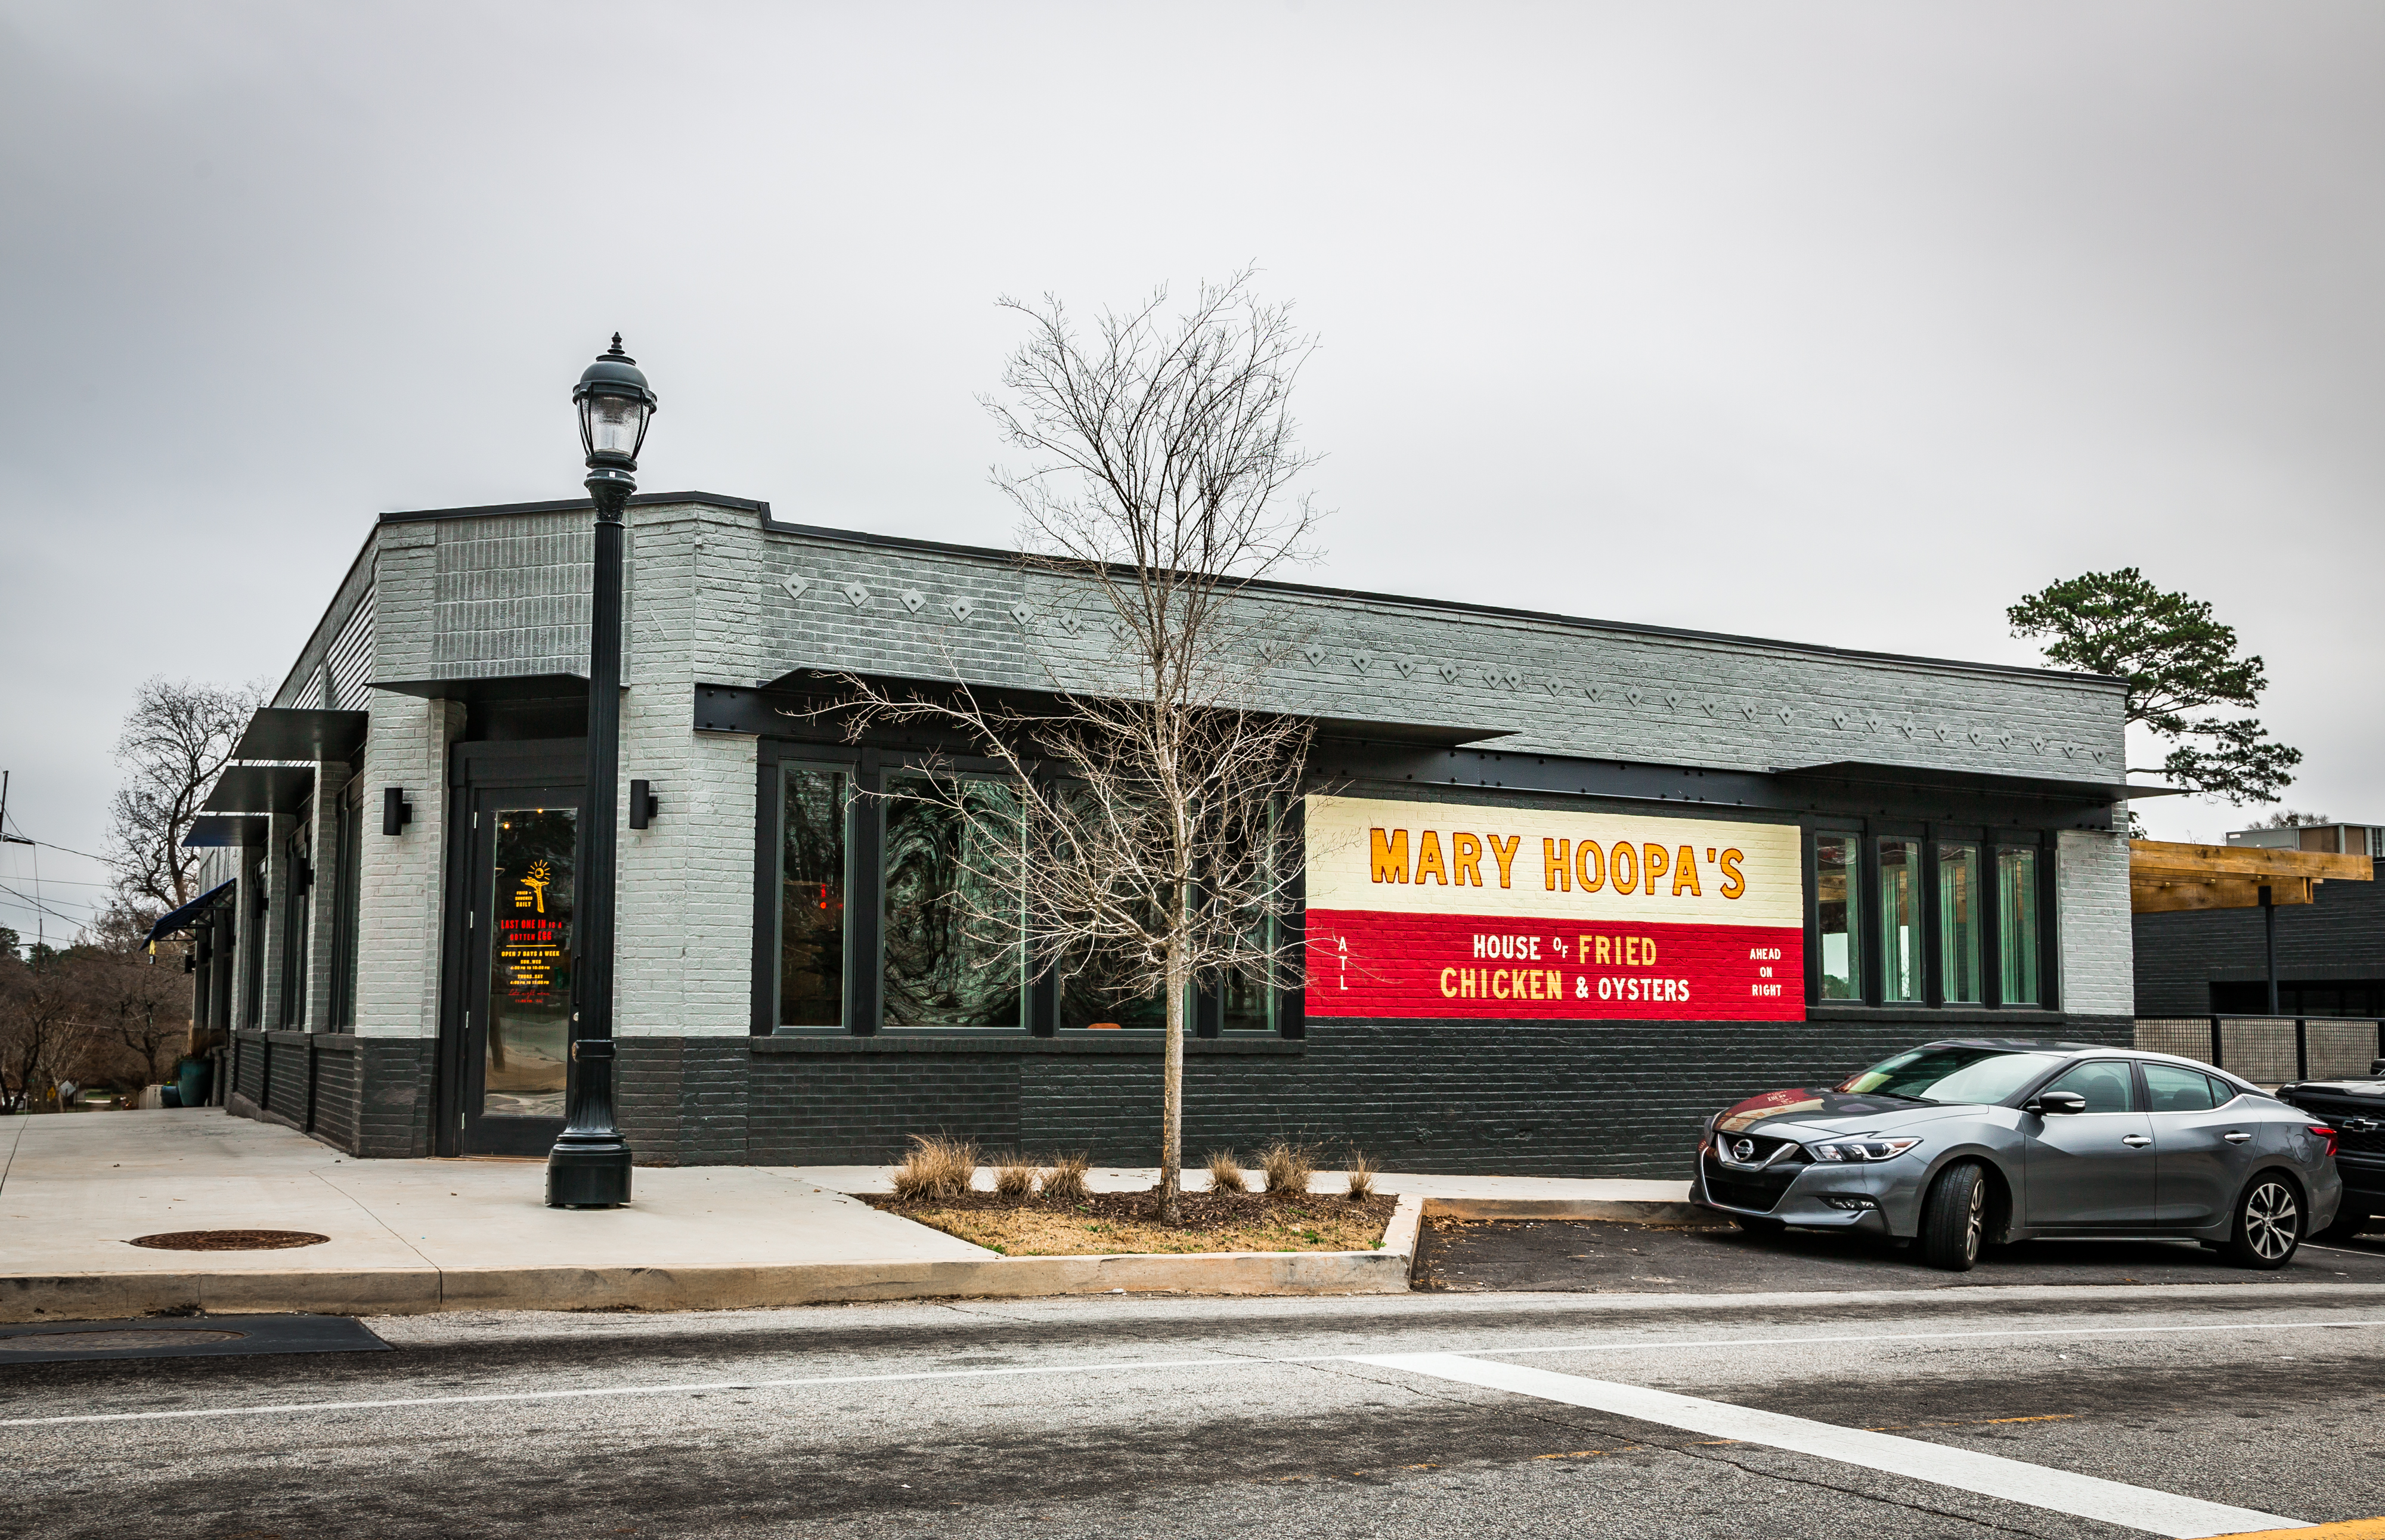 The now closed Mary Hoopa's House of Fried Chicken and Oysters at the corner of Hosea L. Williams and 2nd Avenue in East Lake